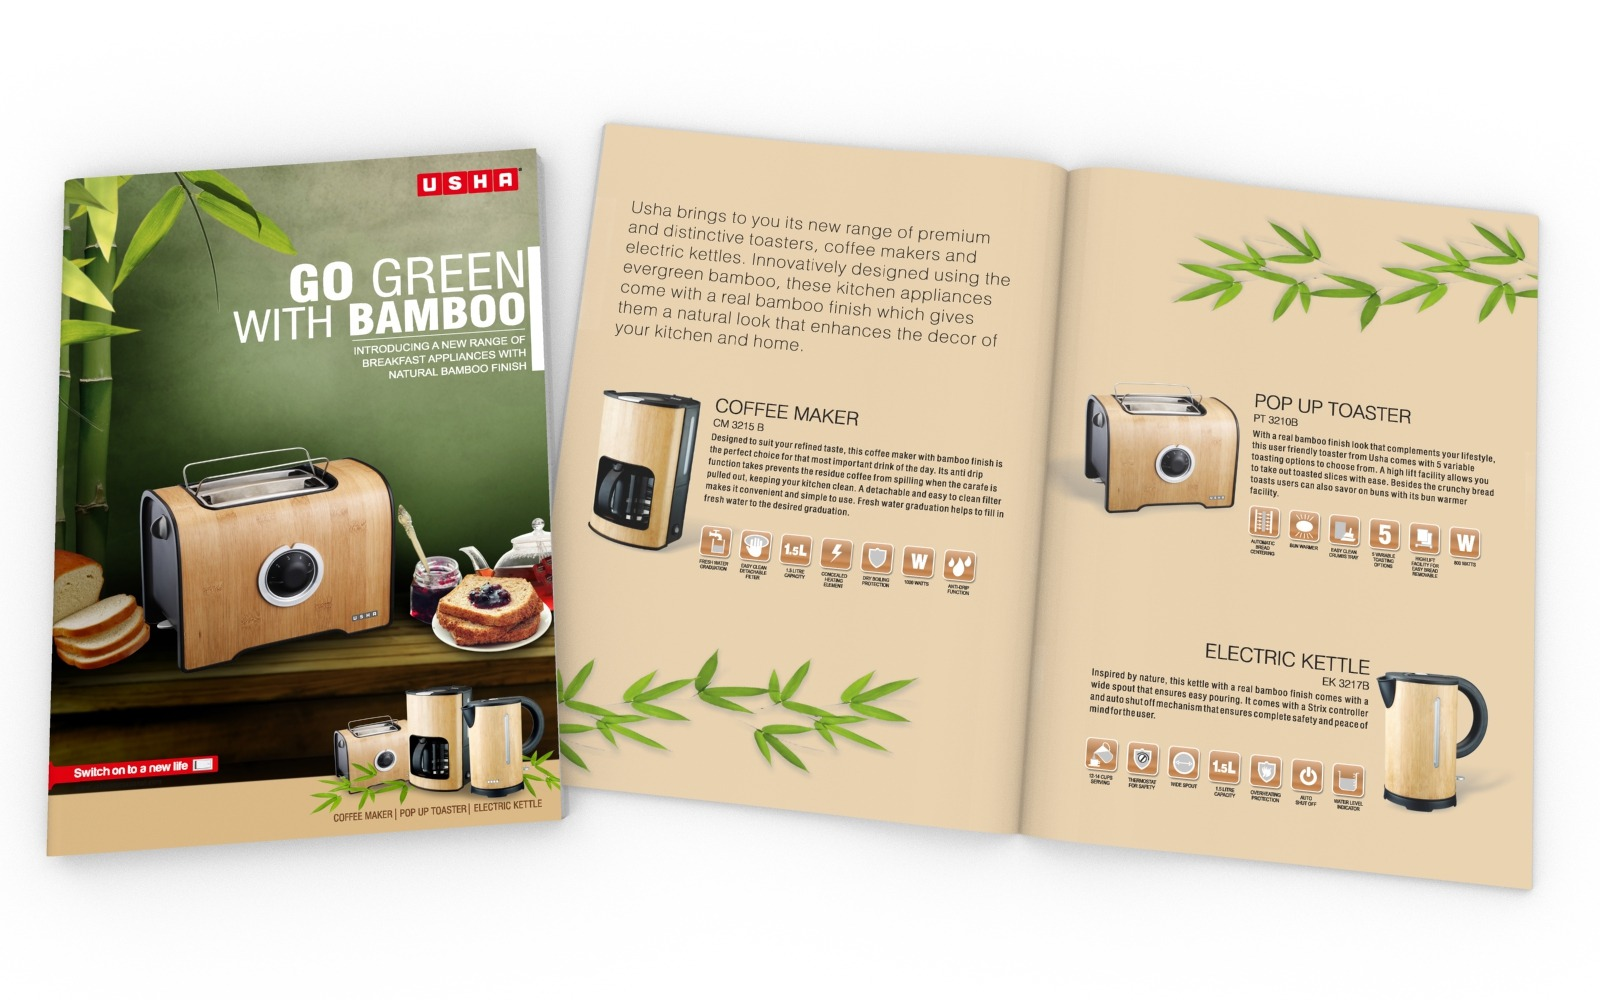 Company Brochure/ Product Catalog design for USHA Bamboo series, A Home appliance company. Coffee Maker, Pop up Toaster, Electric Kettle